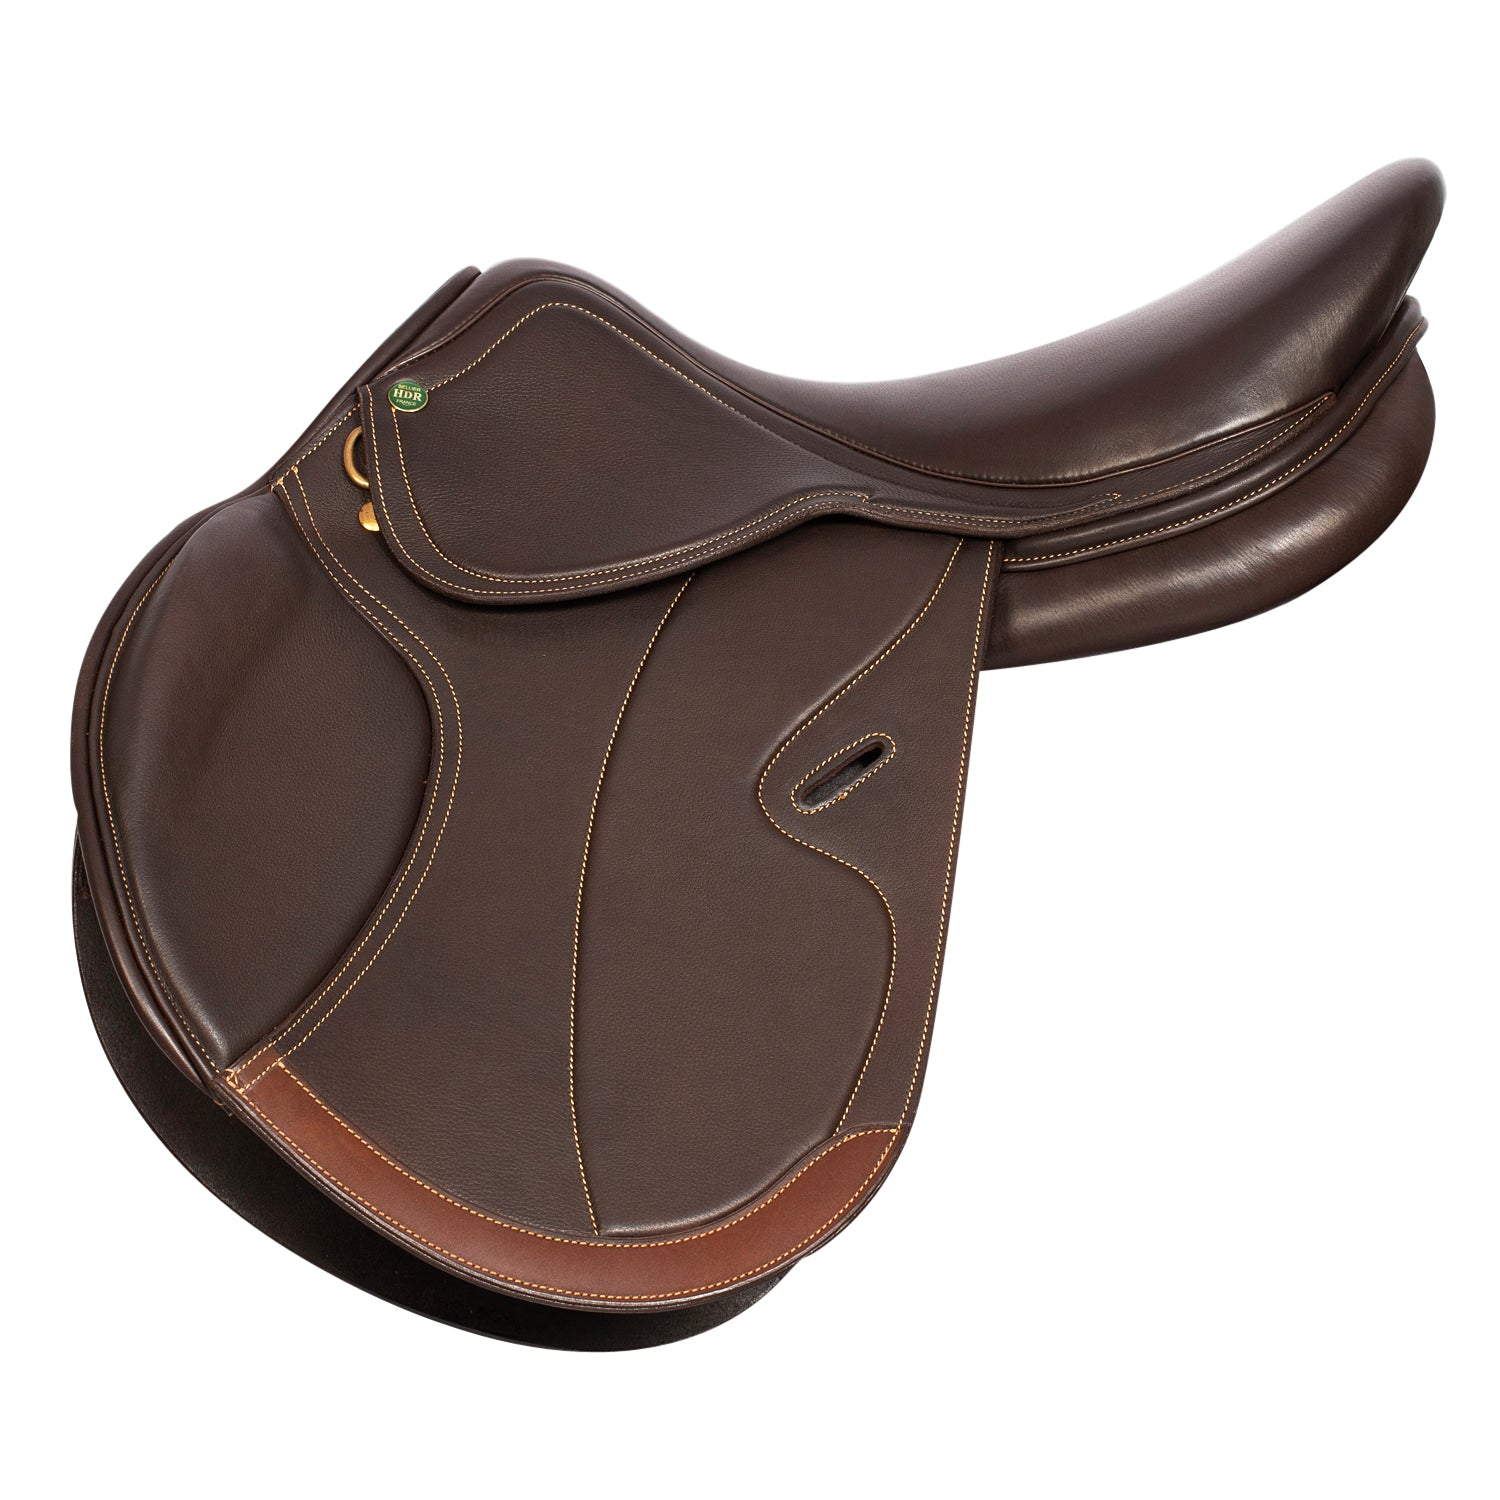 Henri de Rivel Devrel Luxembourg Close Contact Saddle - Short Flap_308